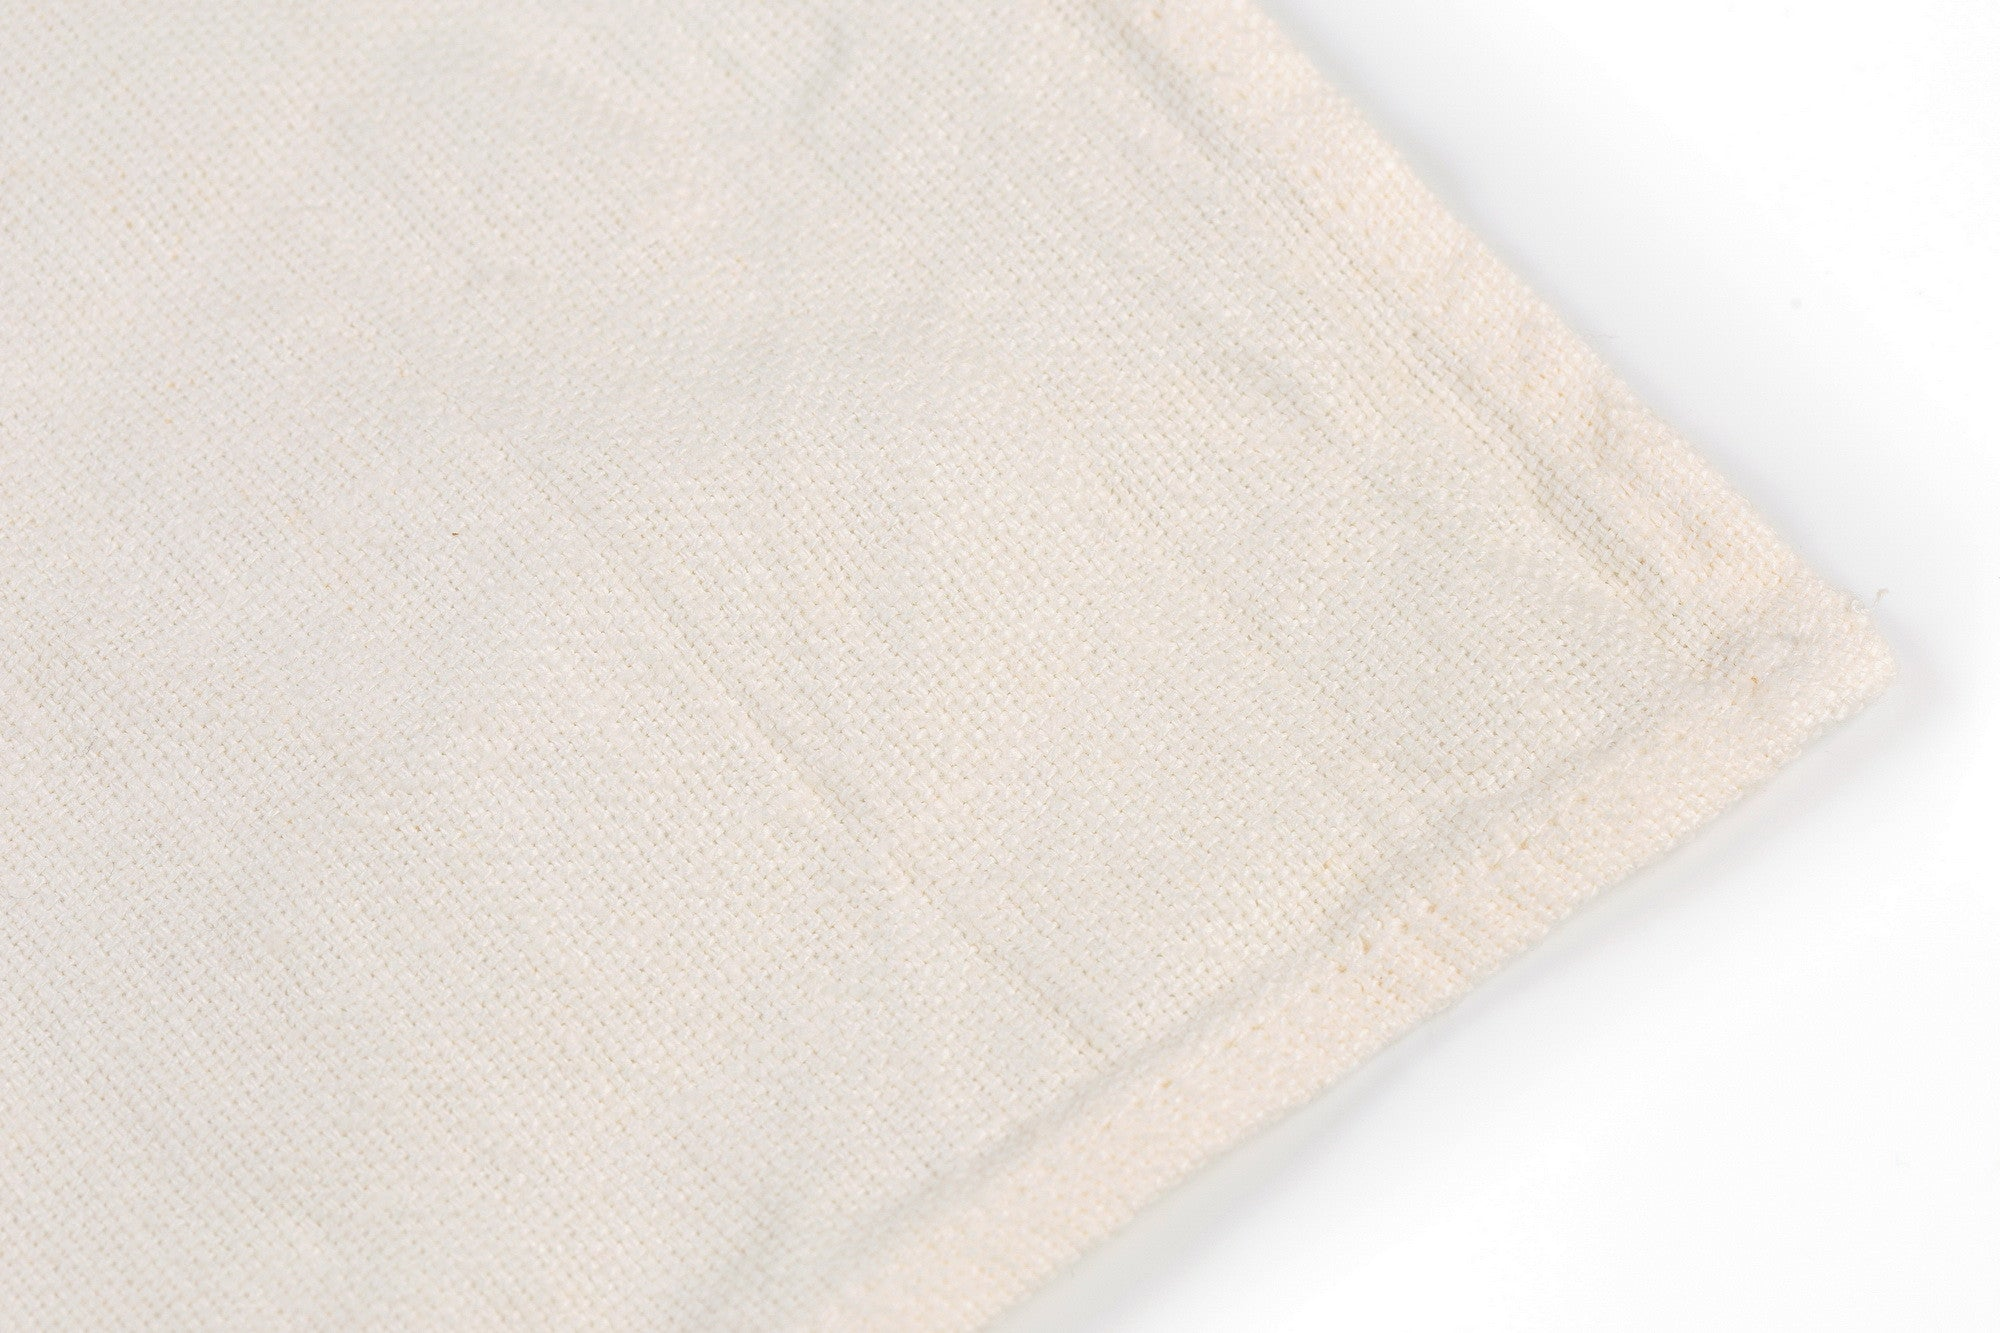 BLESS LINEN Stonewash Pure Linen Flax Hand Kitchen Towel 2-Pack, White - BLESS LINEN pure linen towels and blankets - 2